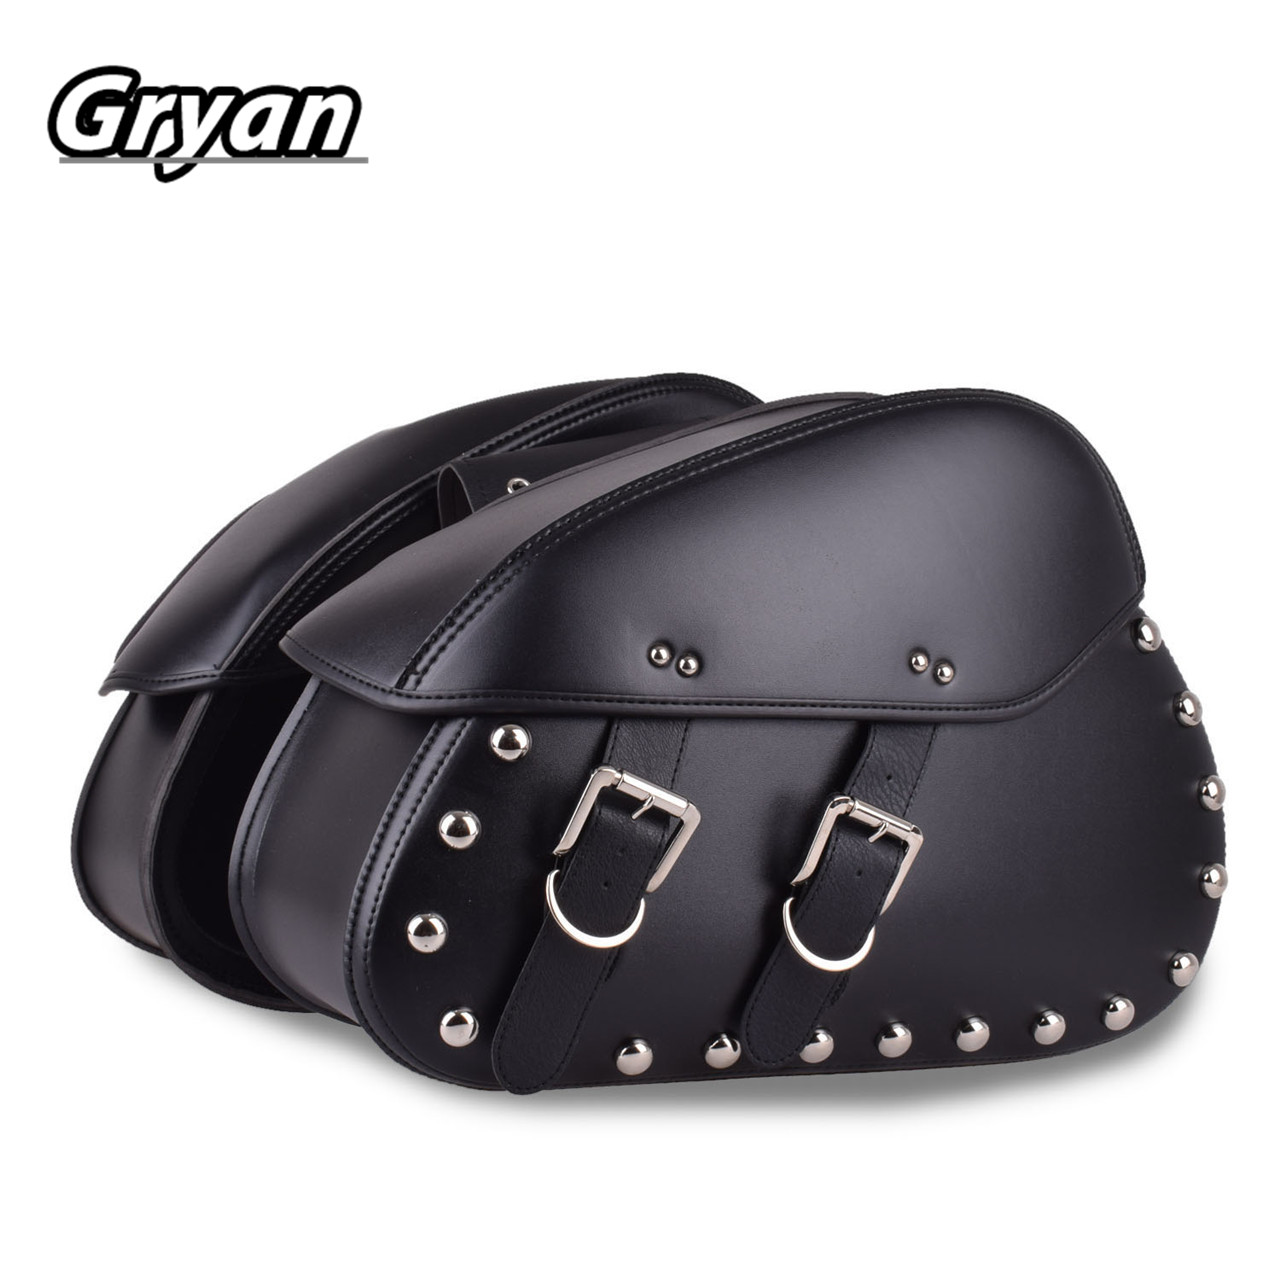 48*16*35cm PU Leather XL883 XL1200 Motorcycle Saddle Bags For Harley Sportster XL 883 XL 1200 Side Tool Bag Luggage Black skull motocycle cnc derby timing timer cover engine for harley xl xr sportster 883 1200 xl xl883 xl1200 forty eight seventy two